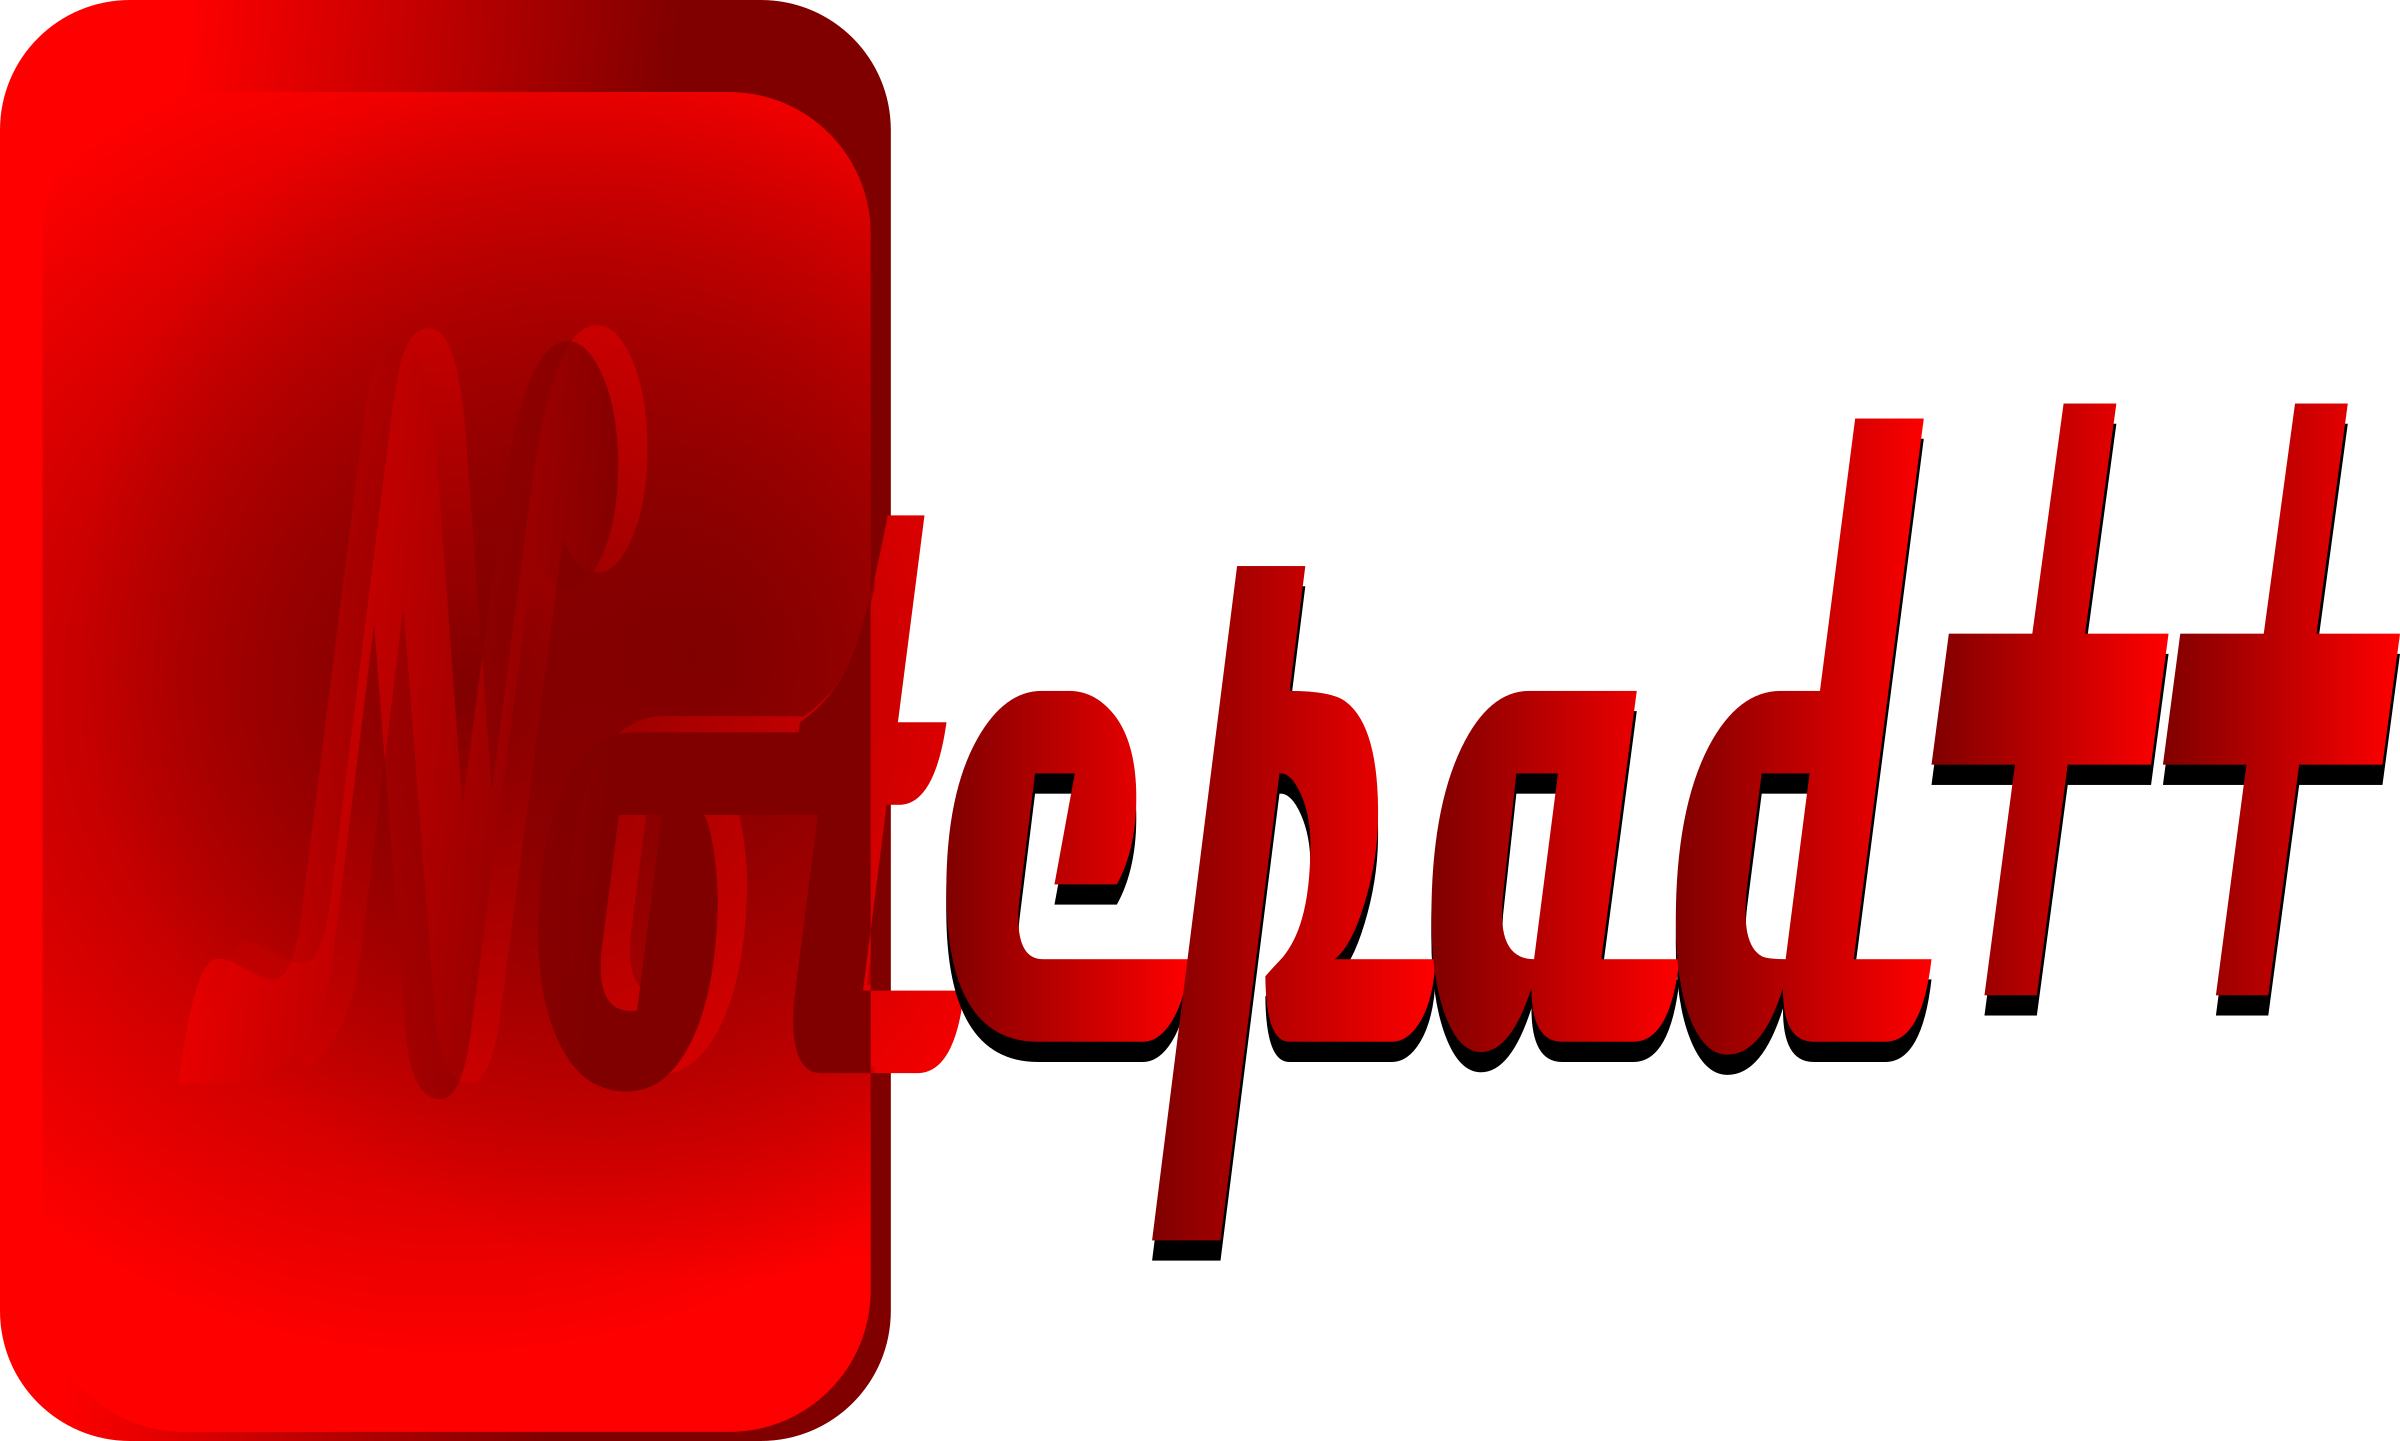 Big image png. Notepad clipart red